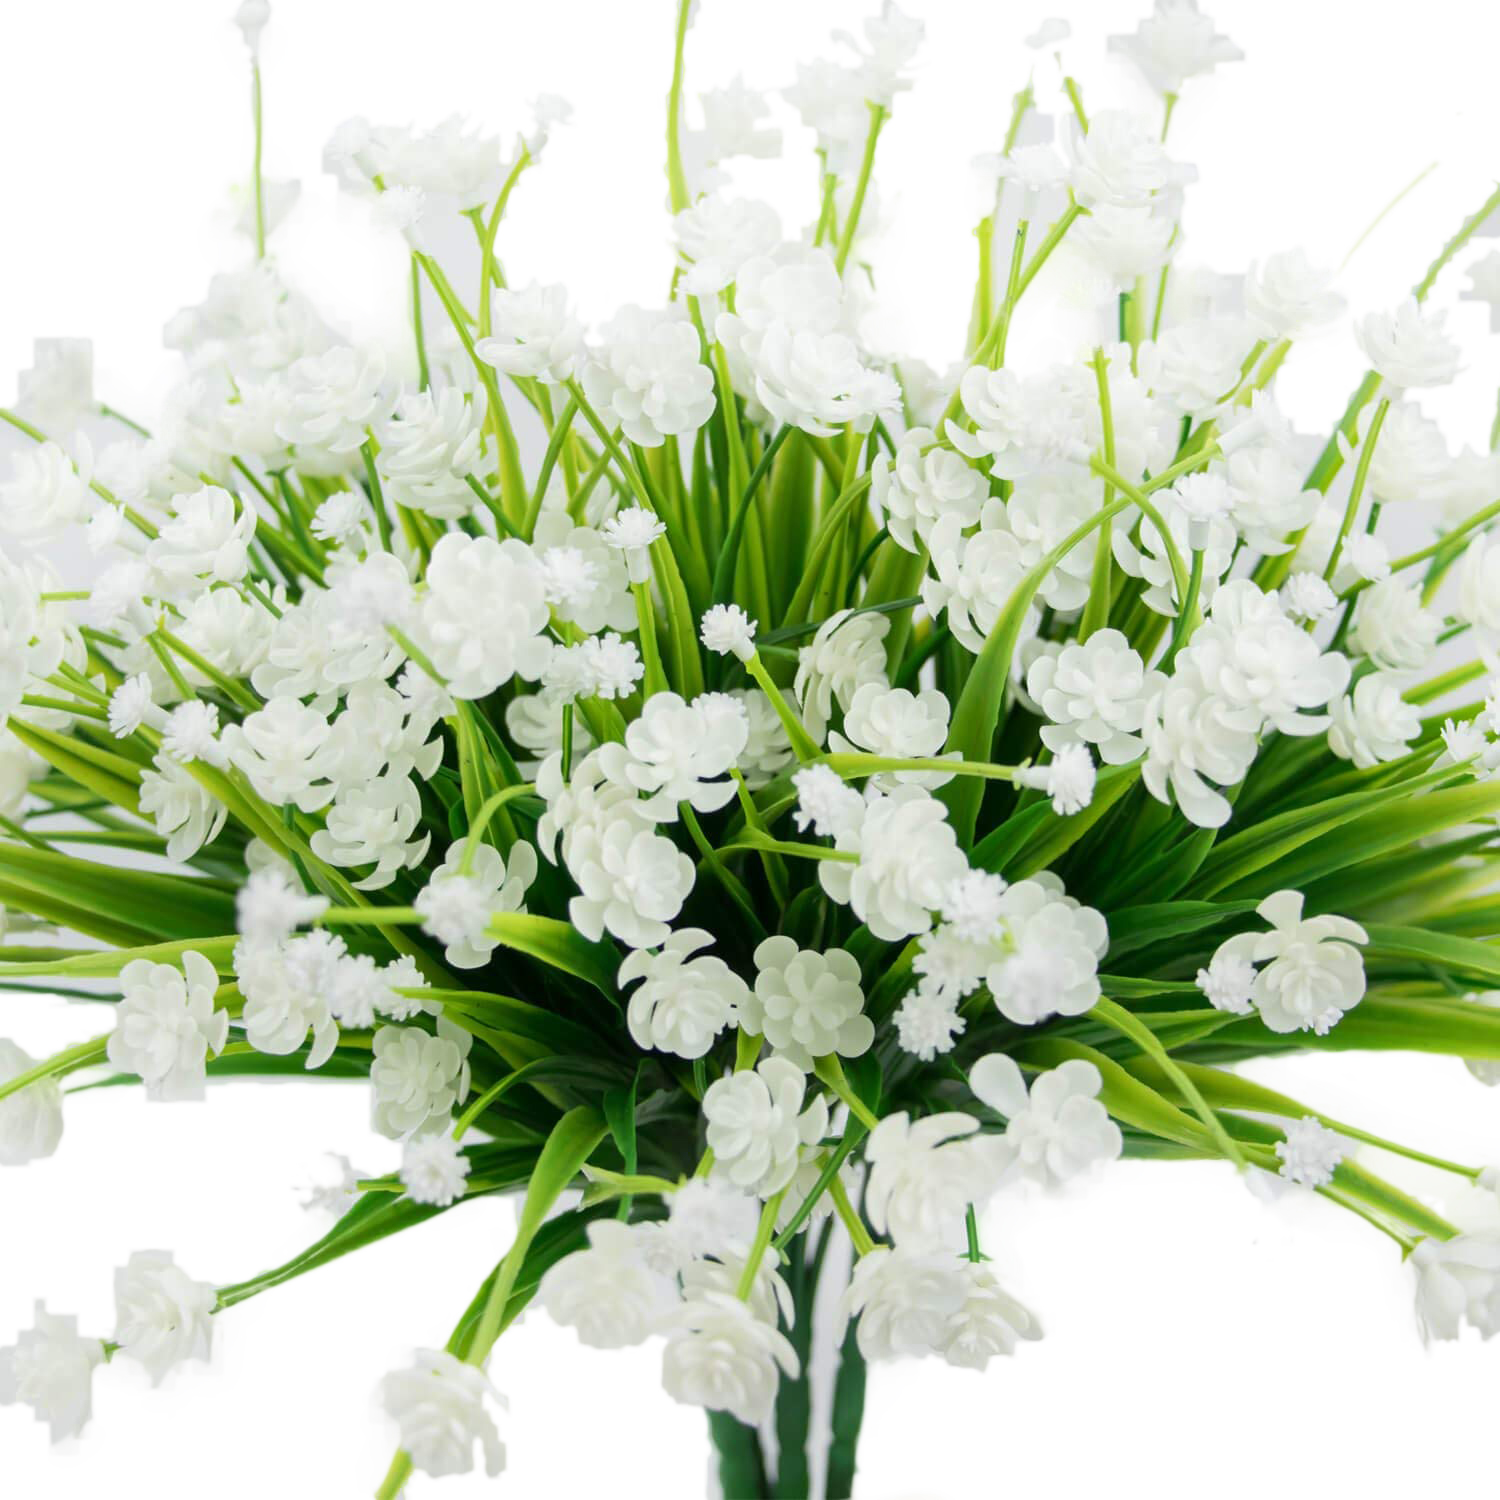 4 Pcs Artificial Flowers Fake Outdoor Faux Plants Greenery Daffodils